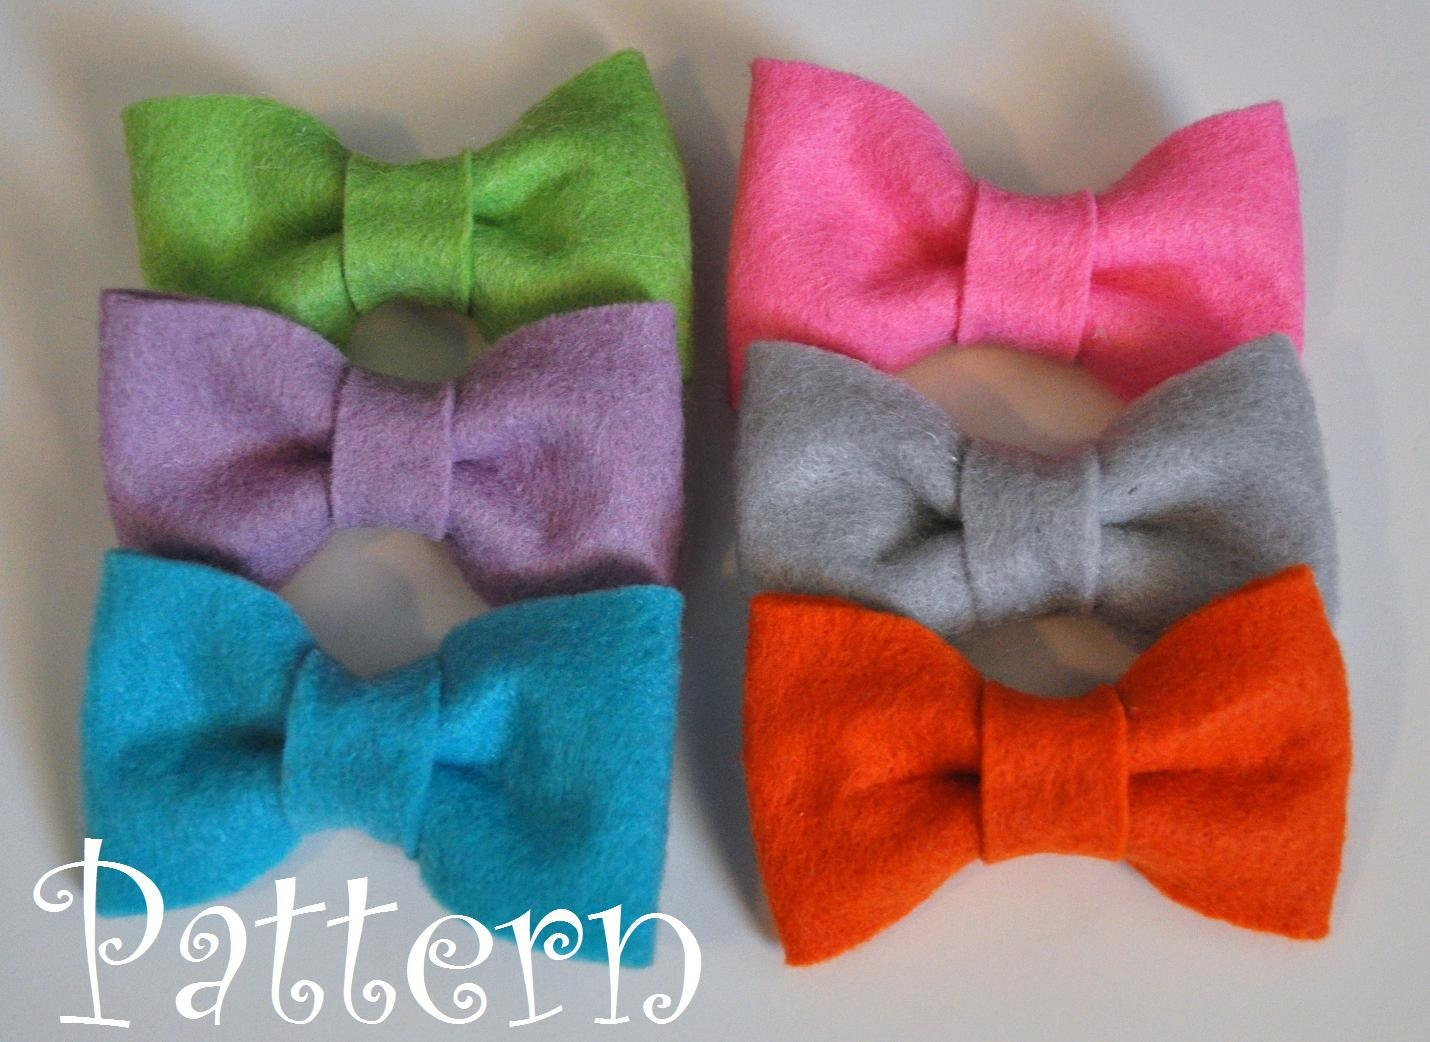 Felt bow pdf tutorial with printable templates 6 bows in 1 felt bow pdf tutorial with printable templates 6 bows in 1 tutorial headband hair clip brooch baby bow tie pronofoot35fo Gallery